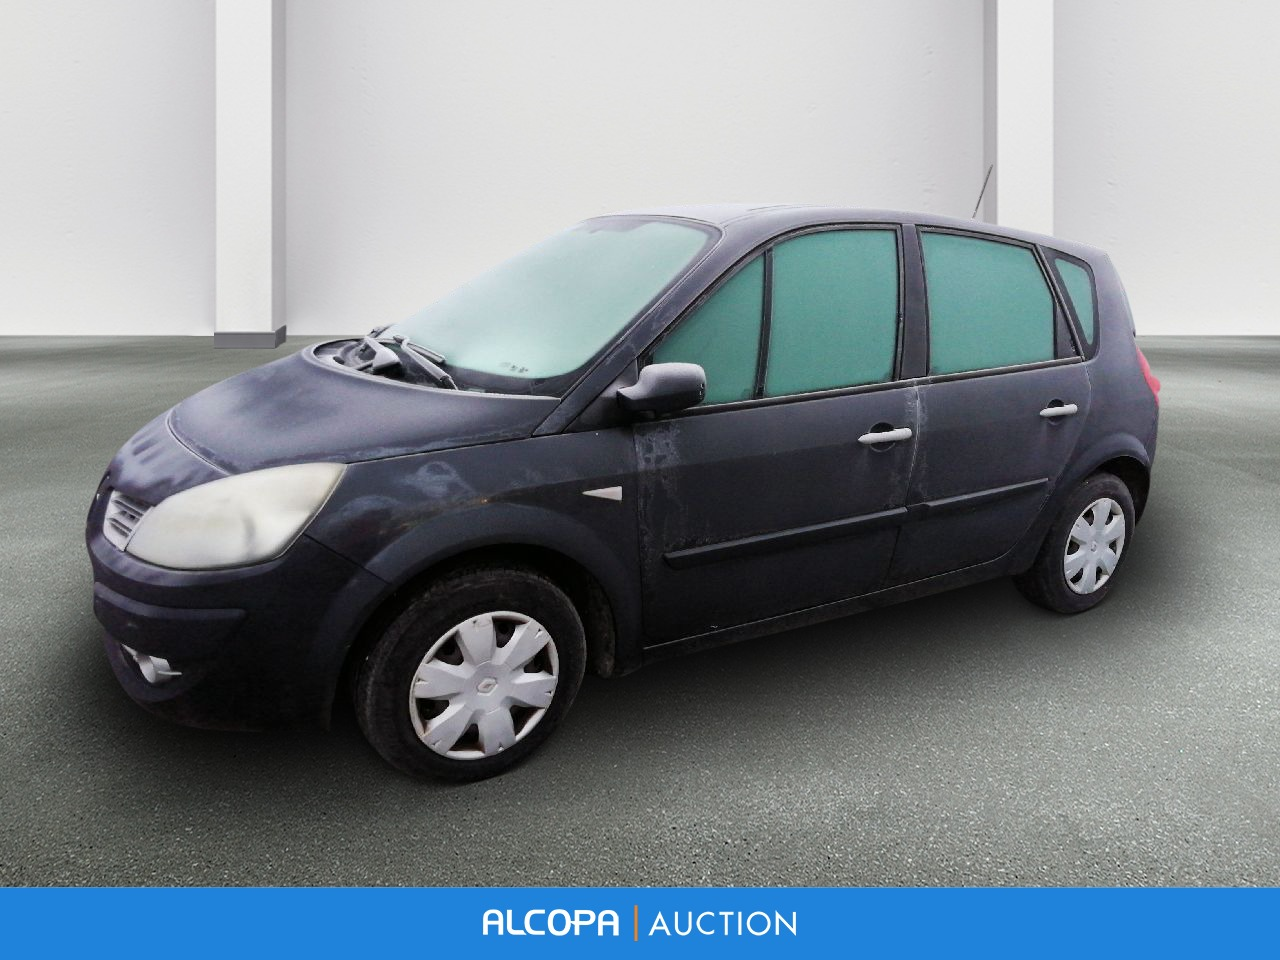 renault scenic ii scenic 1 5 dci 105 eco2 emotion tours alcopa auction. Black Bedroom Furniture Sets. Home Design Ideas